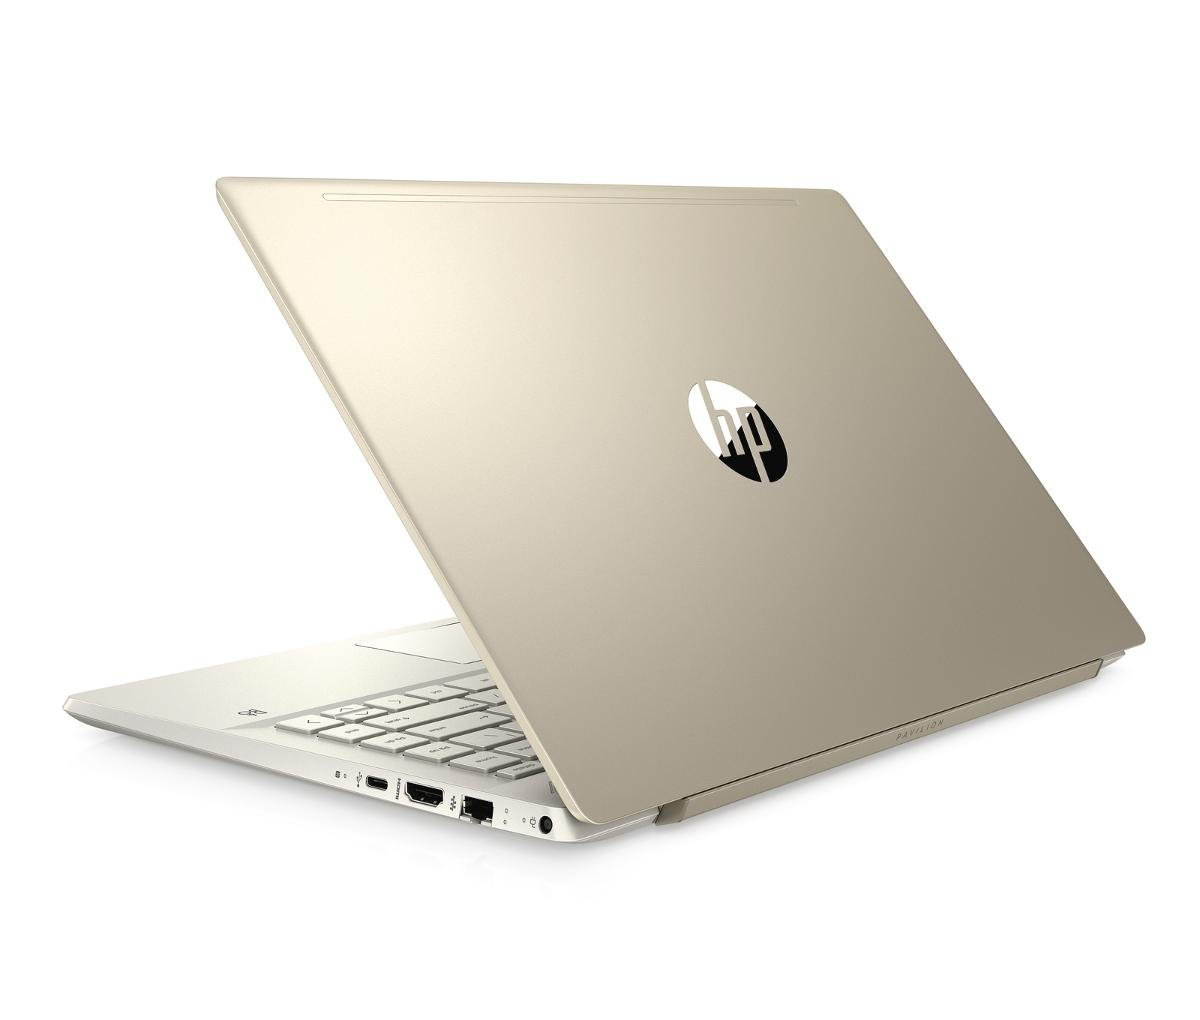 "Laptop HP Pavilion 14-ce2002nw 6VM51EA, i3-8145U, 4 GB RAM, 14"", 256 GB SSD, Windows 10 Home"